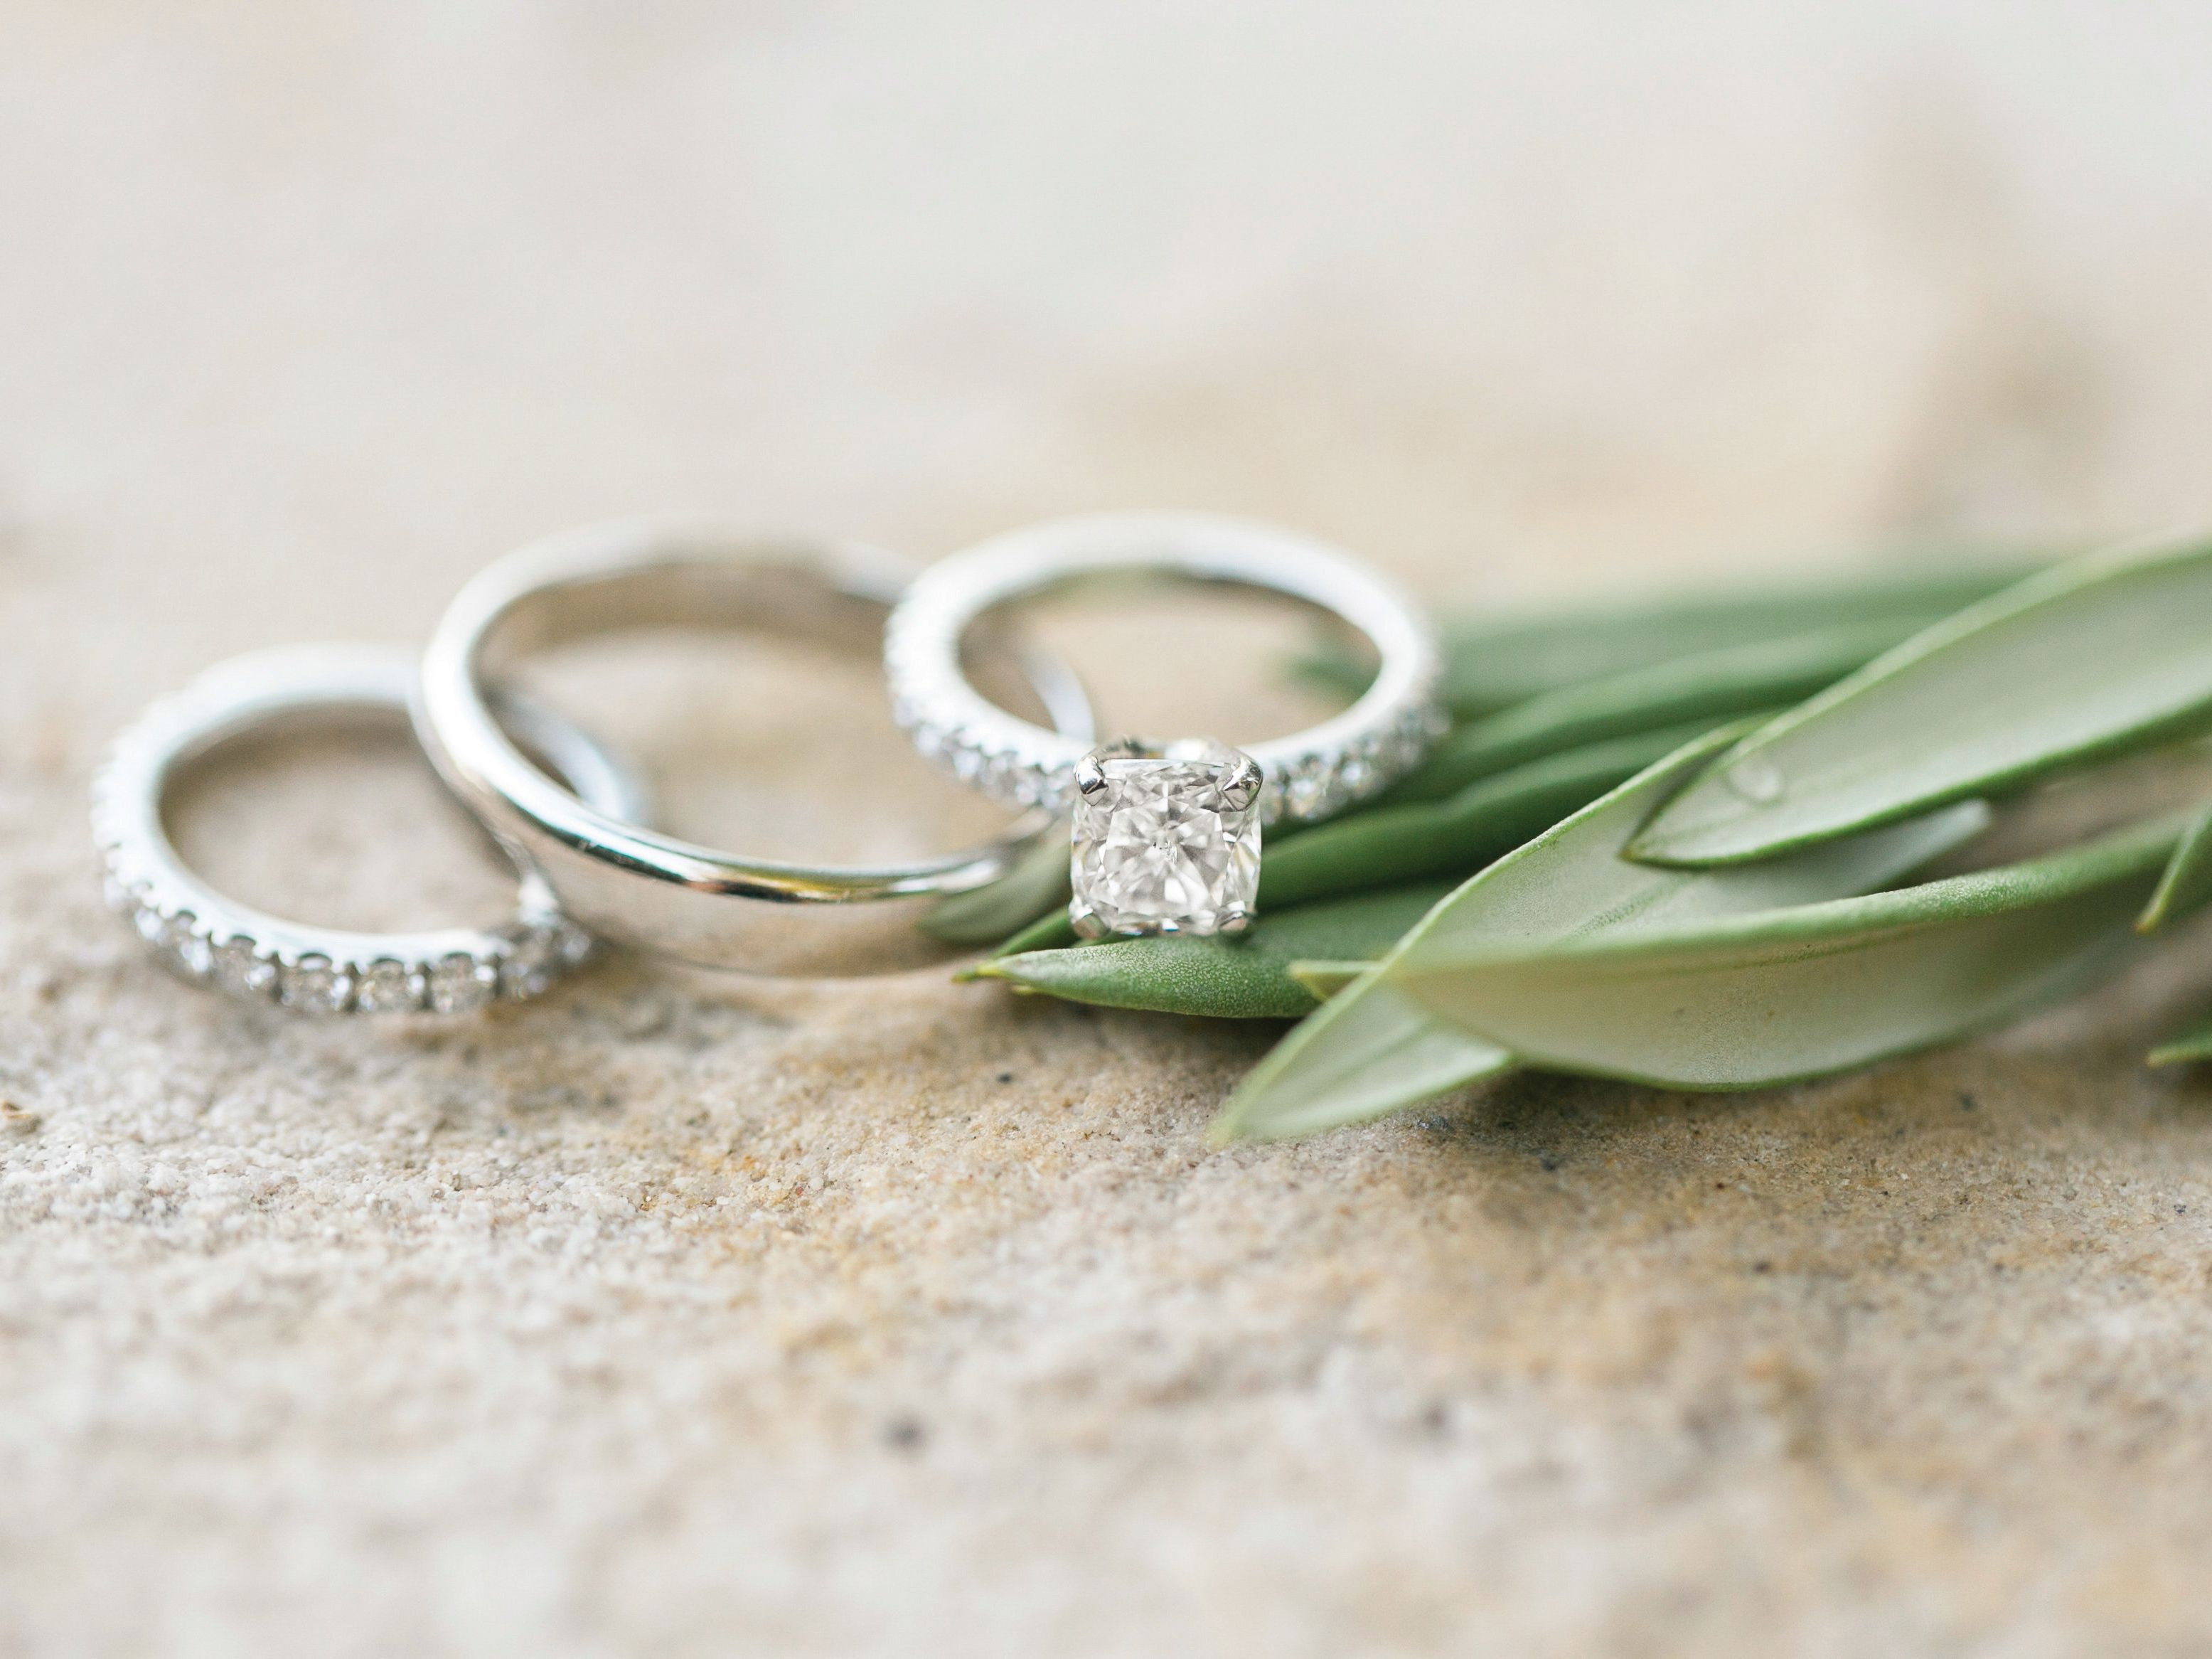 jewelry ring rings diamond wedding geeky and elegant news of engagement